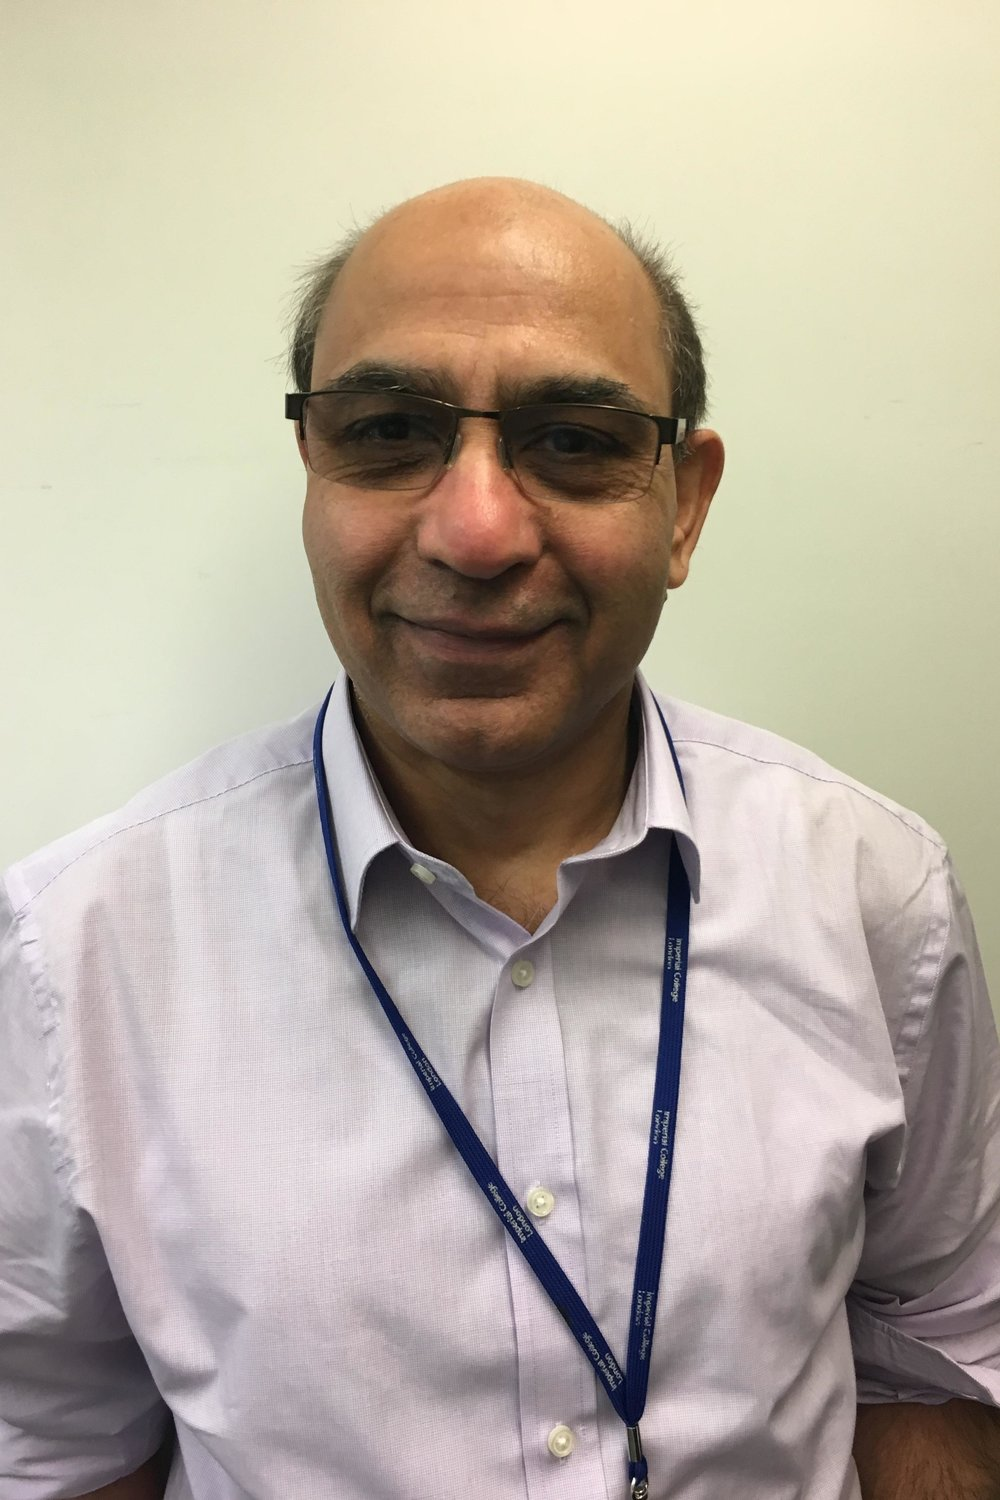 Dr Mo Aslam - Consultant Clinical PhysiologistMo graduated from University of London and completed his PhD while working at The Royal Postgraduate Medical School. He has over 33 years of experience in cardio-vascular and GI physiology including advanced imaging technology. He is currently working at the Imperial College London, in addition to providing vascular scanning service to the NHS Trust; he is supervising higher degree students and running MSc courses including medical ultrasound.